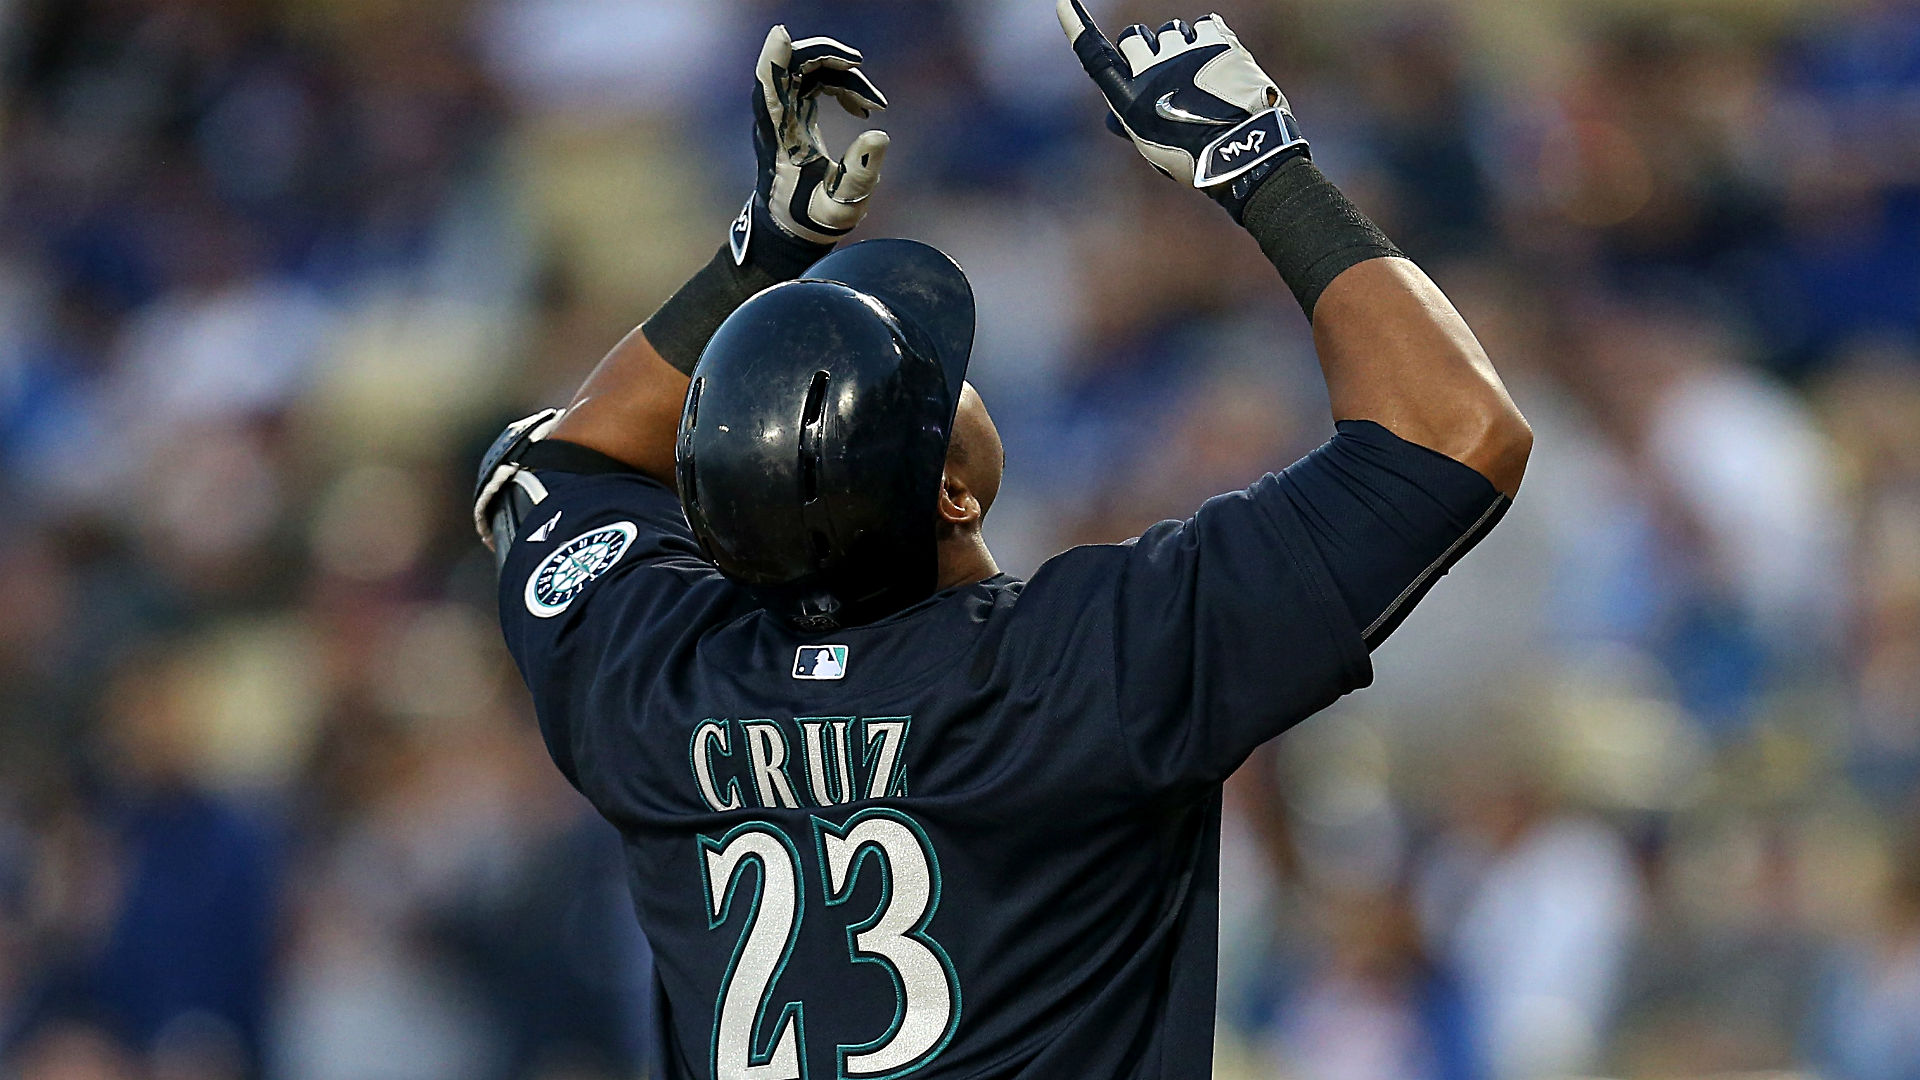 MLB Nightly 9: Nelson Cruz bashes his MLB-leading 12th and 13th HRs